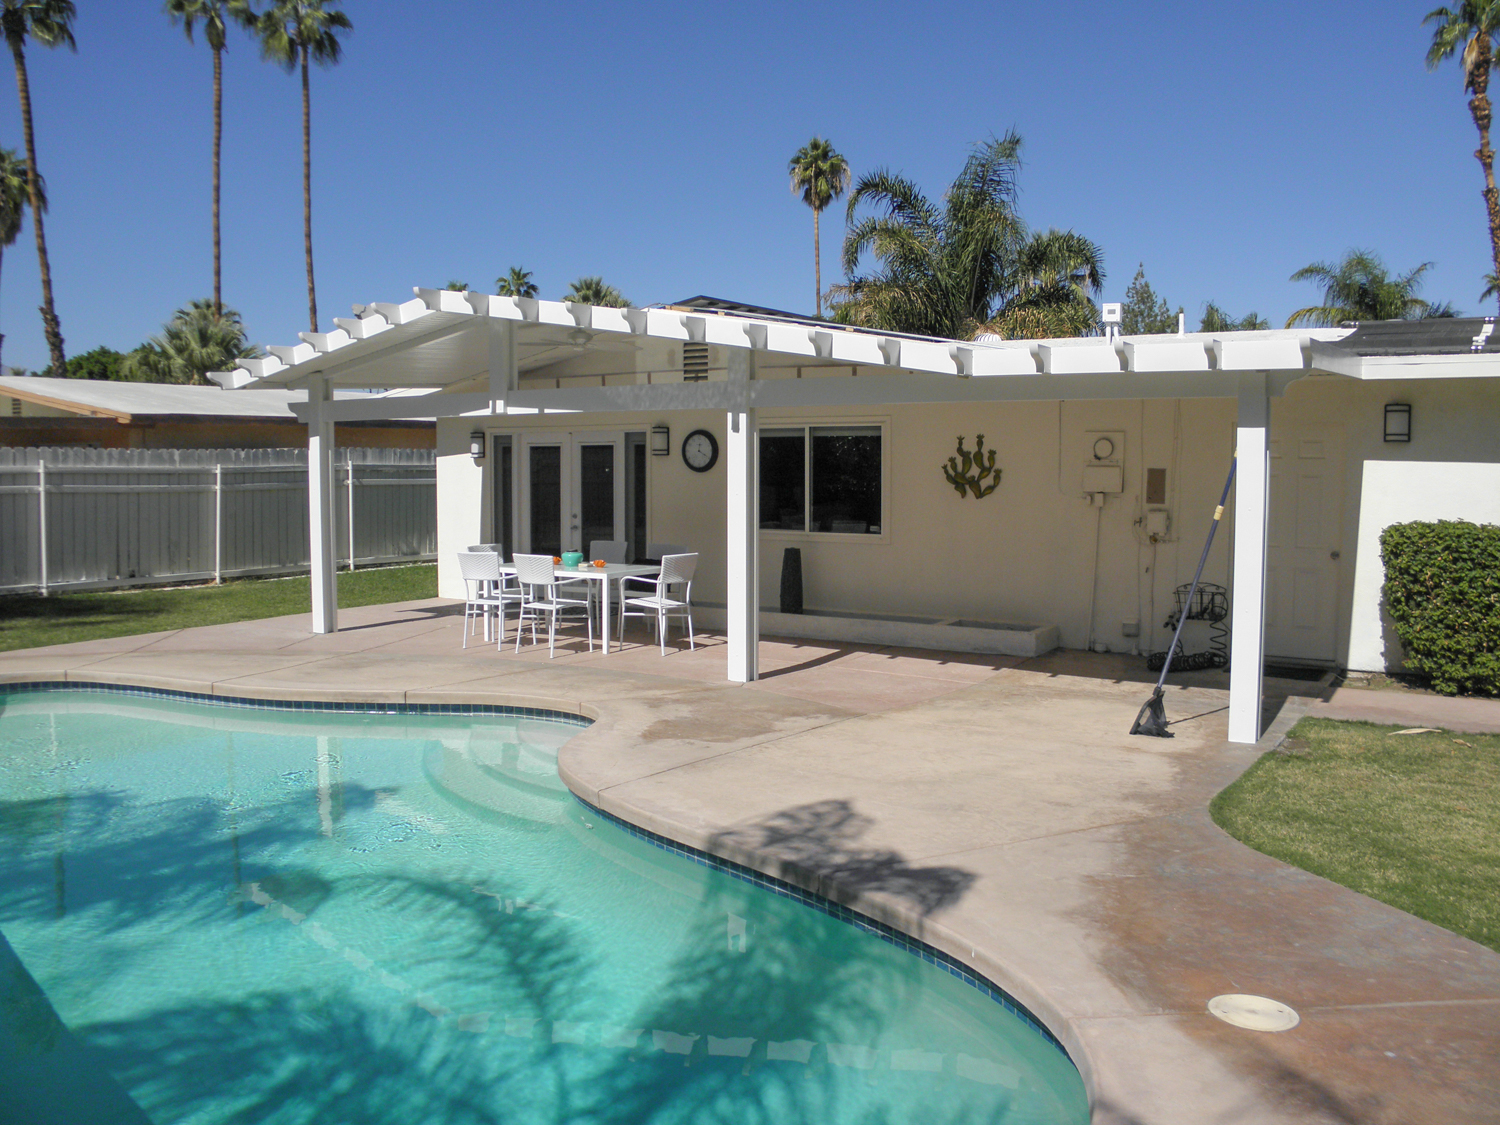 Gable Roof Solid Patio Cover, Palm Desert 92260